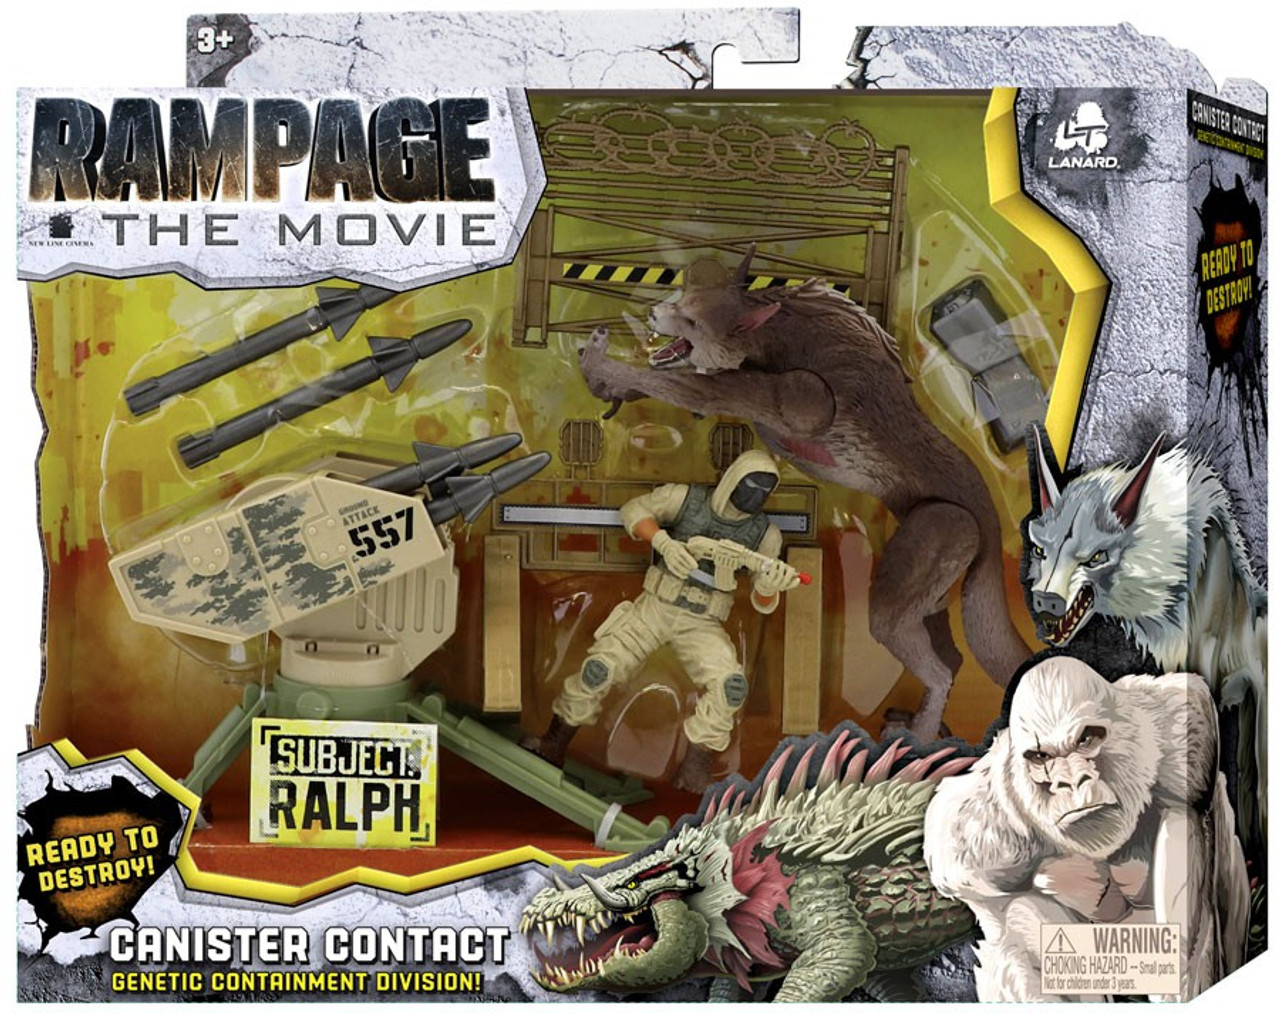 Rampage The Movie Canister Contact Ralph Exclusive Figure Set